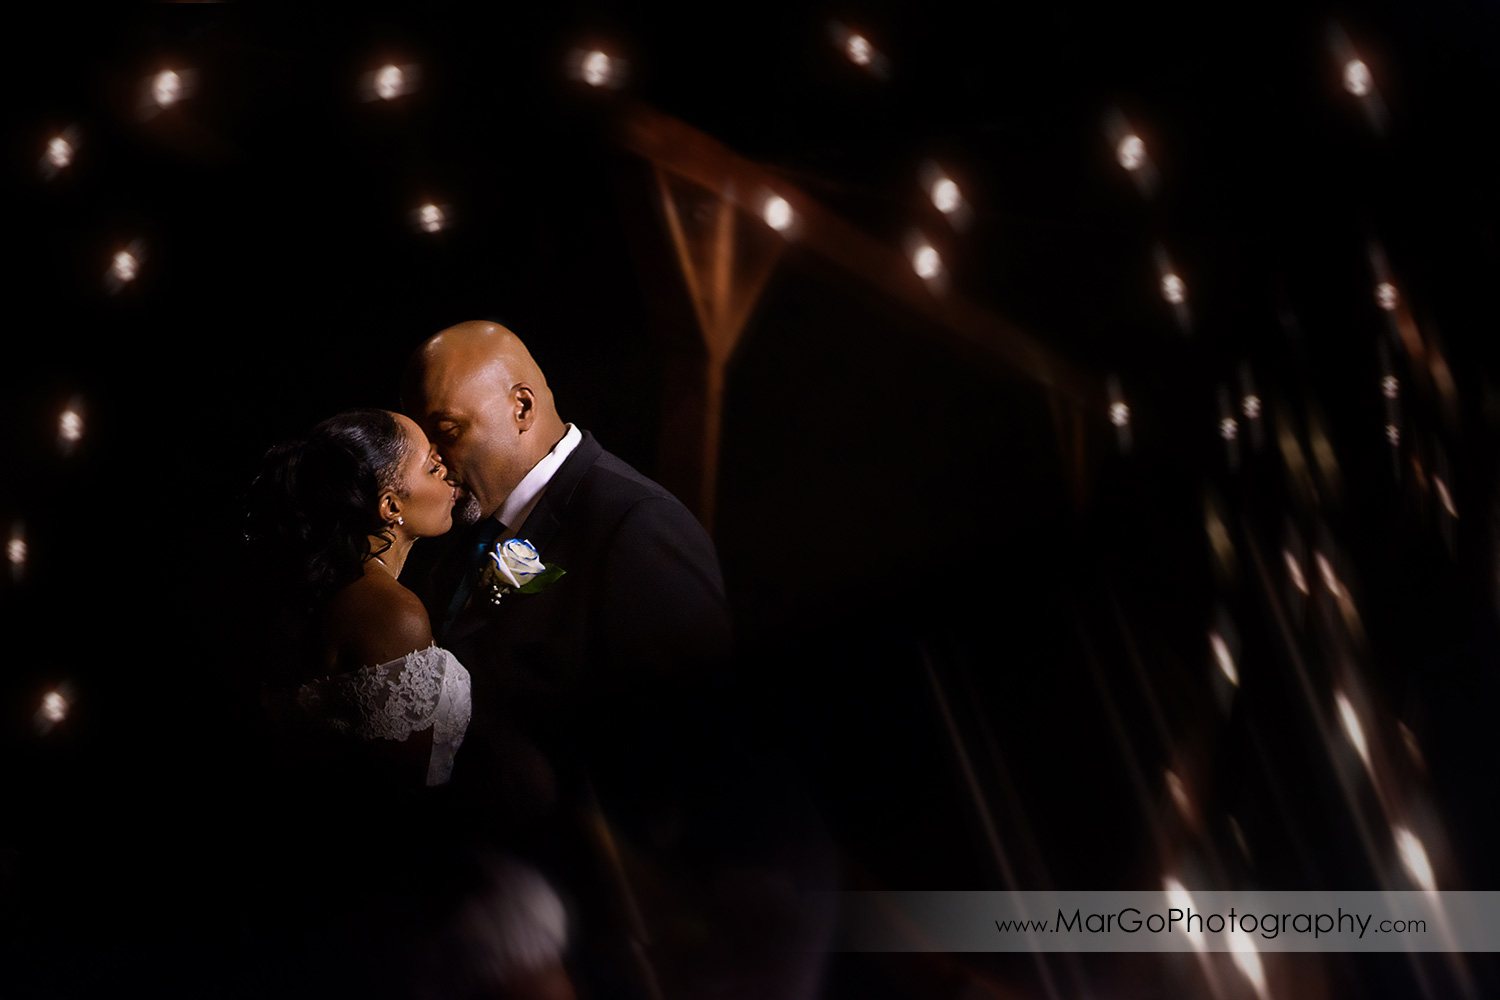 dreamy shot of bride and groom at Wedgewood Wedding & Banquet Center in Brentwood